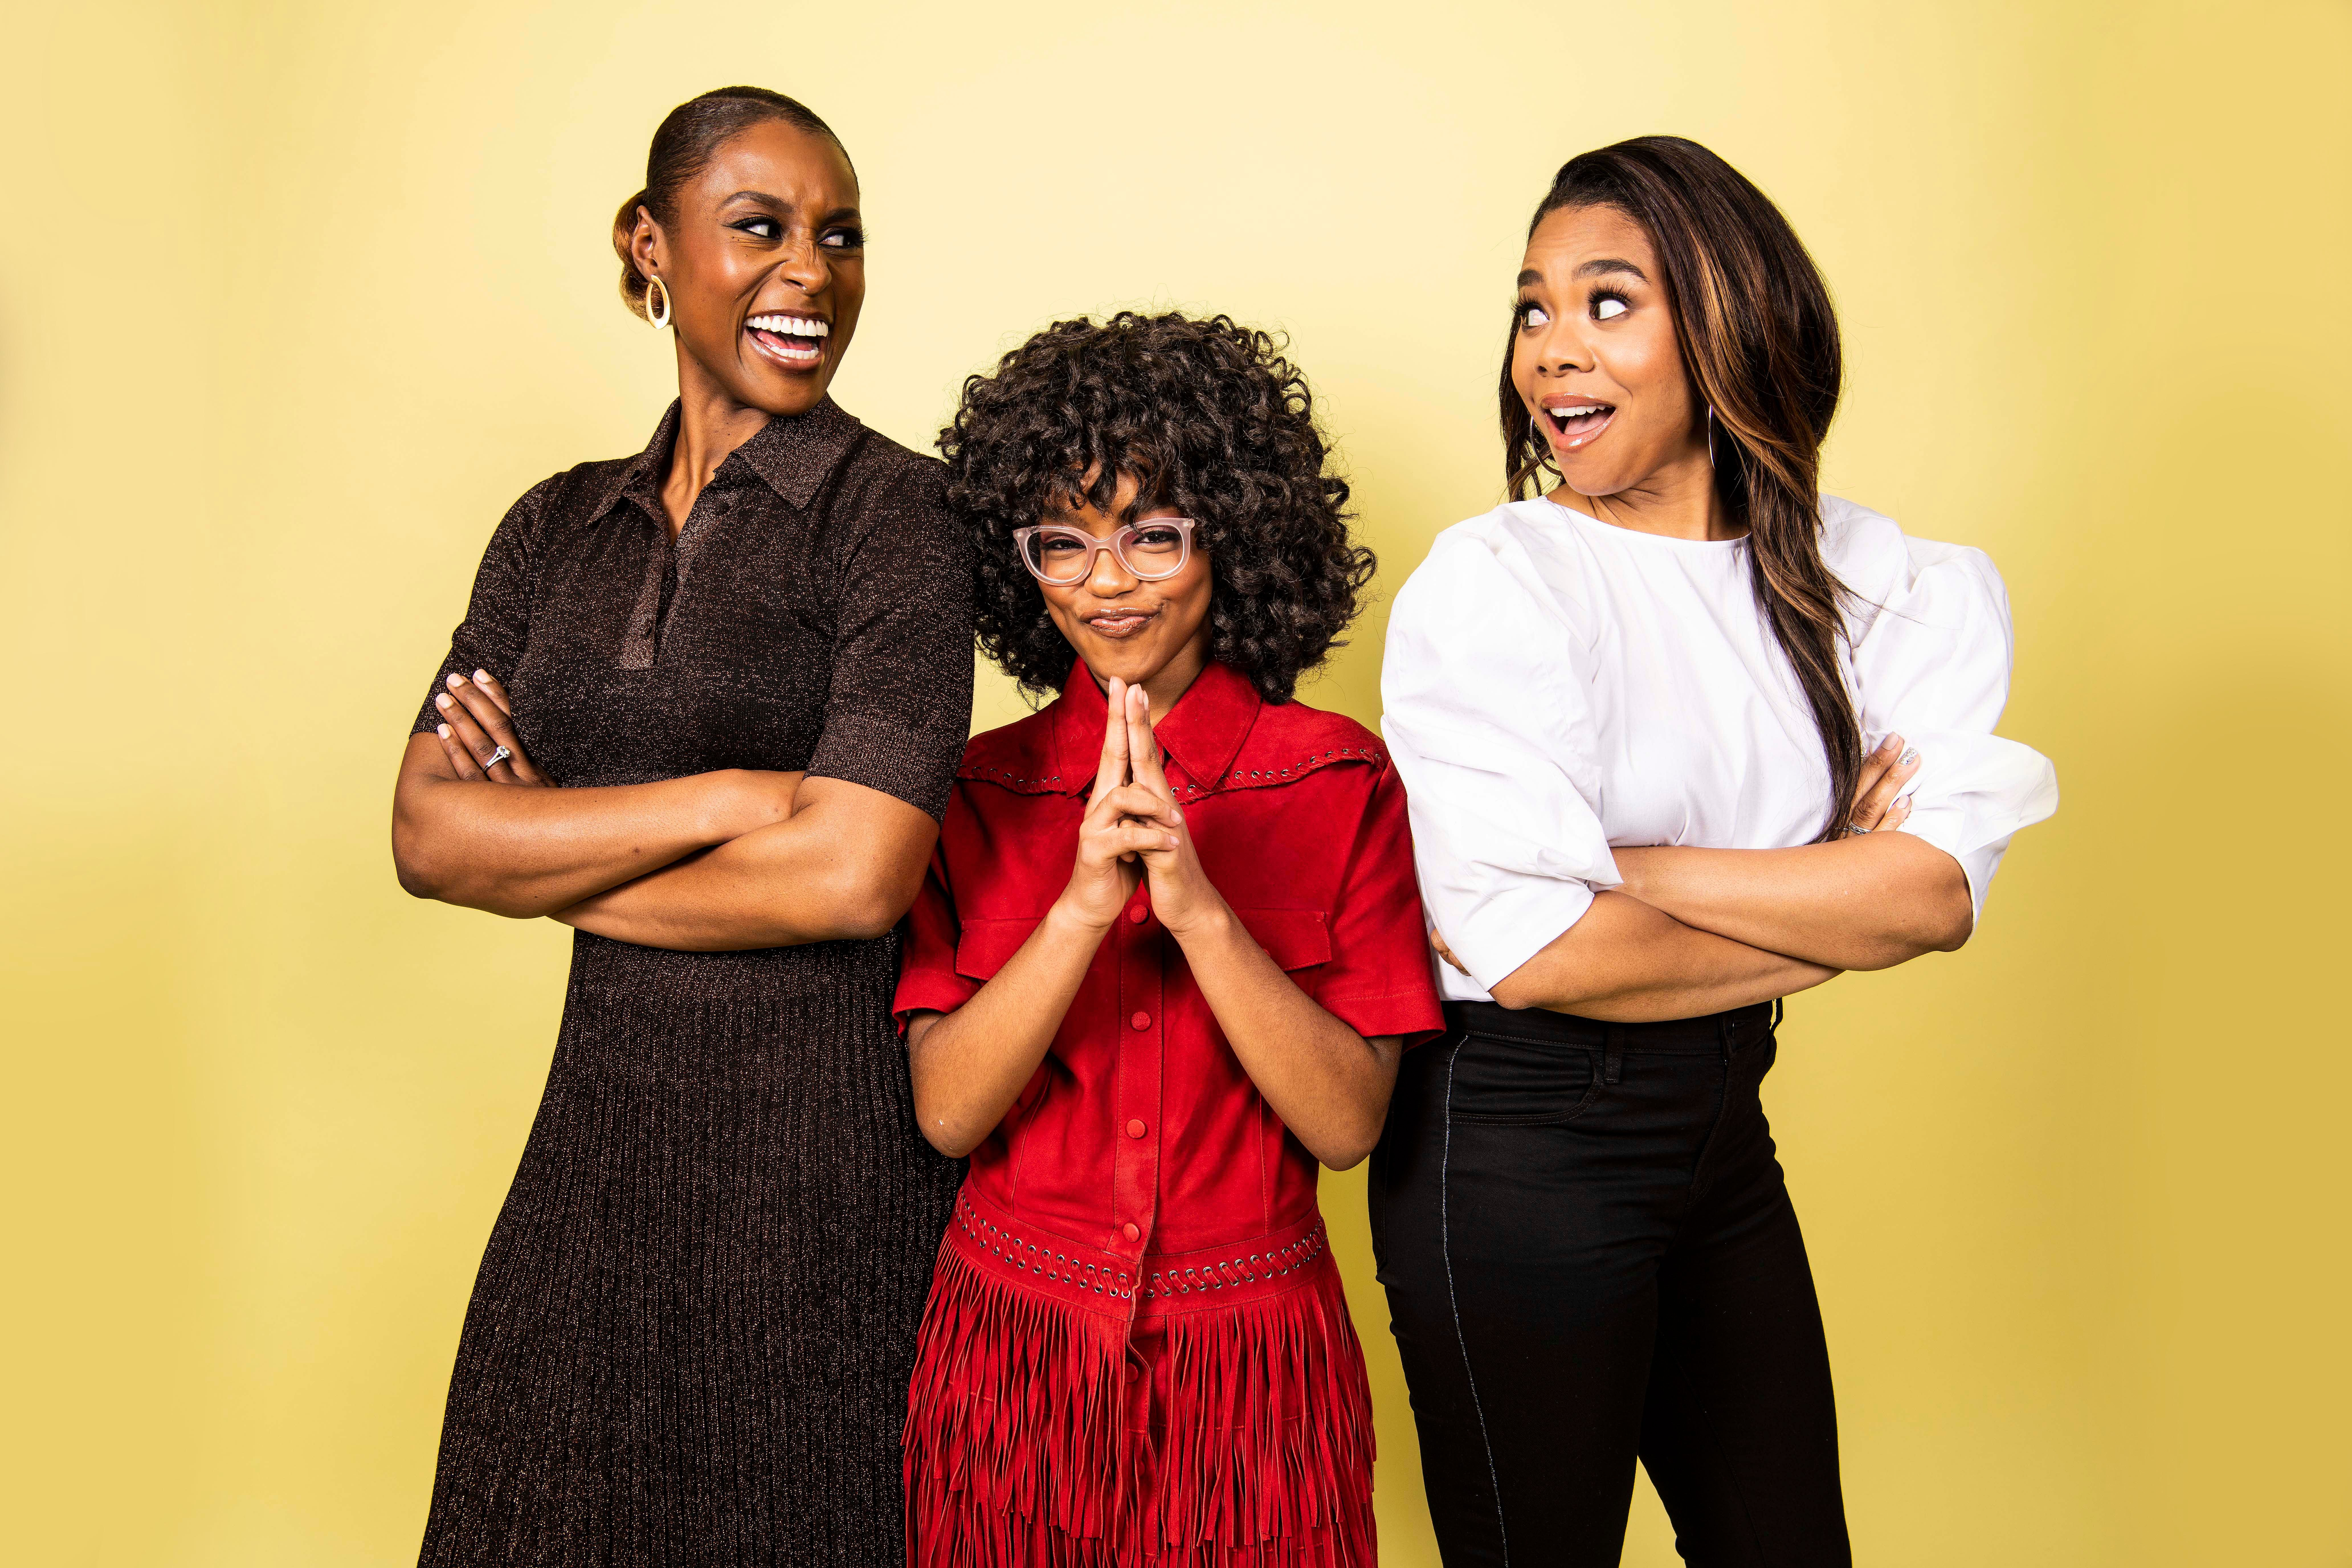 NEW YORK, NY - APRIL 1: Issa Rae, Marsai Martin and Regina Hall pose for portraits in New York on Apr. 1, 2019. (Photo by Damon Dahlen/HuffPost) *** Local Caption ***